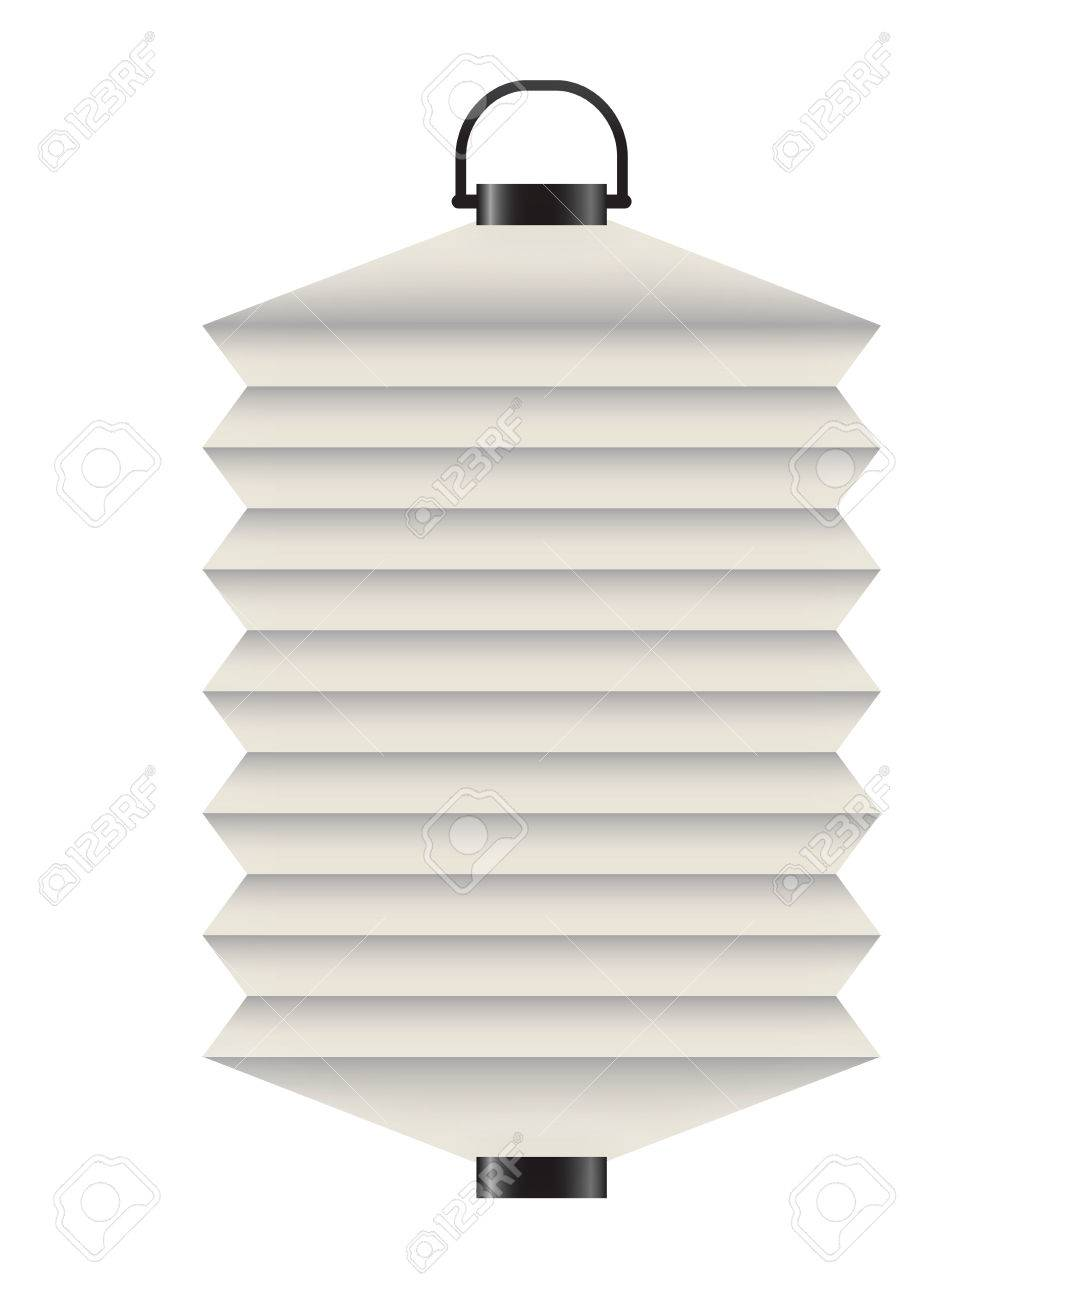 Japanese Lantern Template Stock Photo, Picture And Royalty Free ...